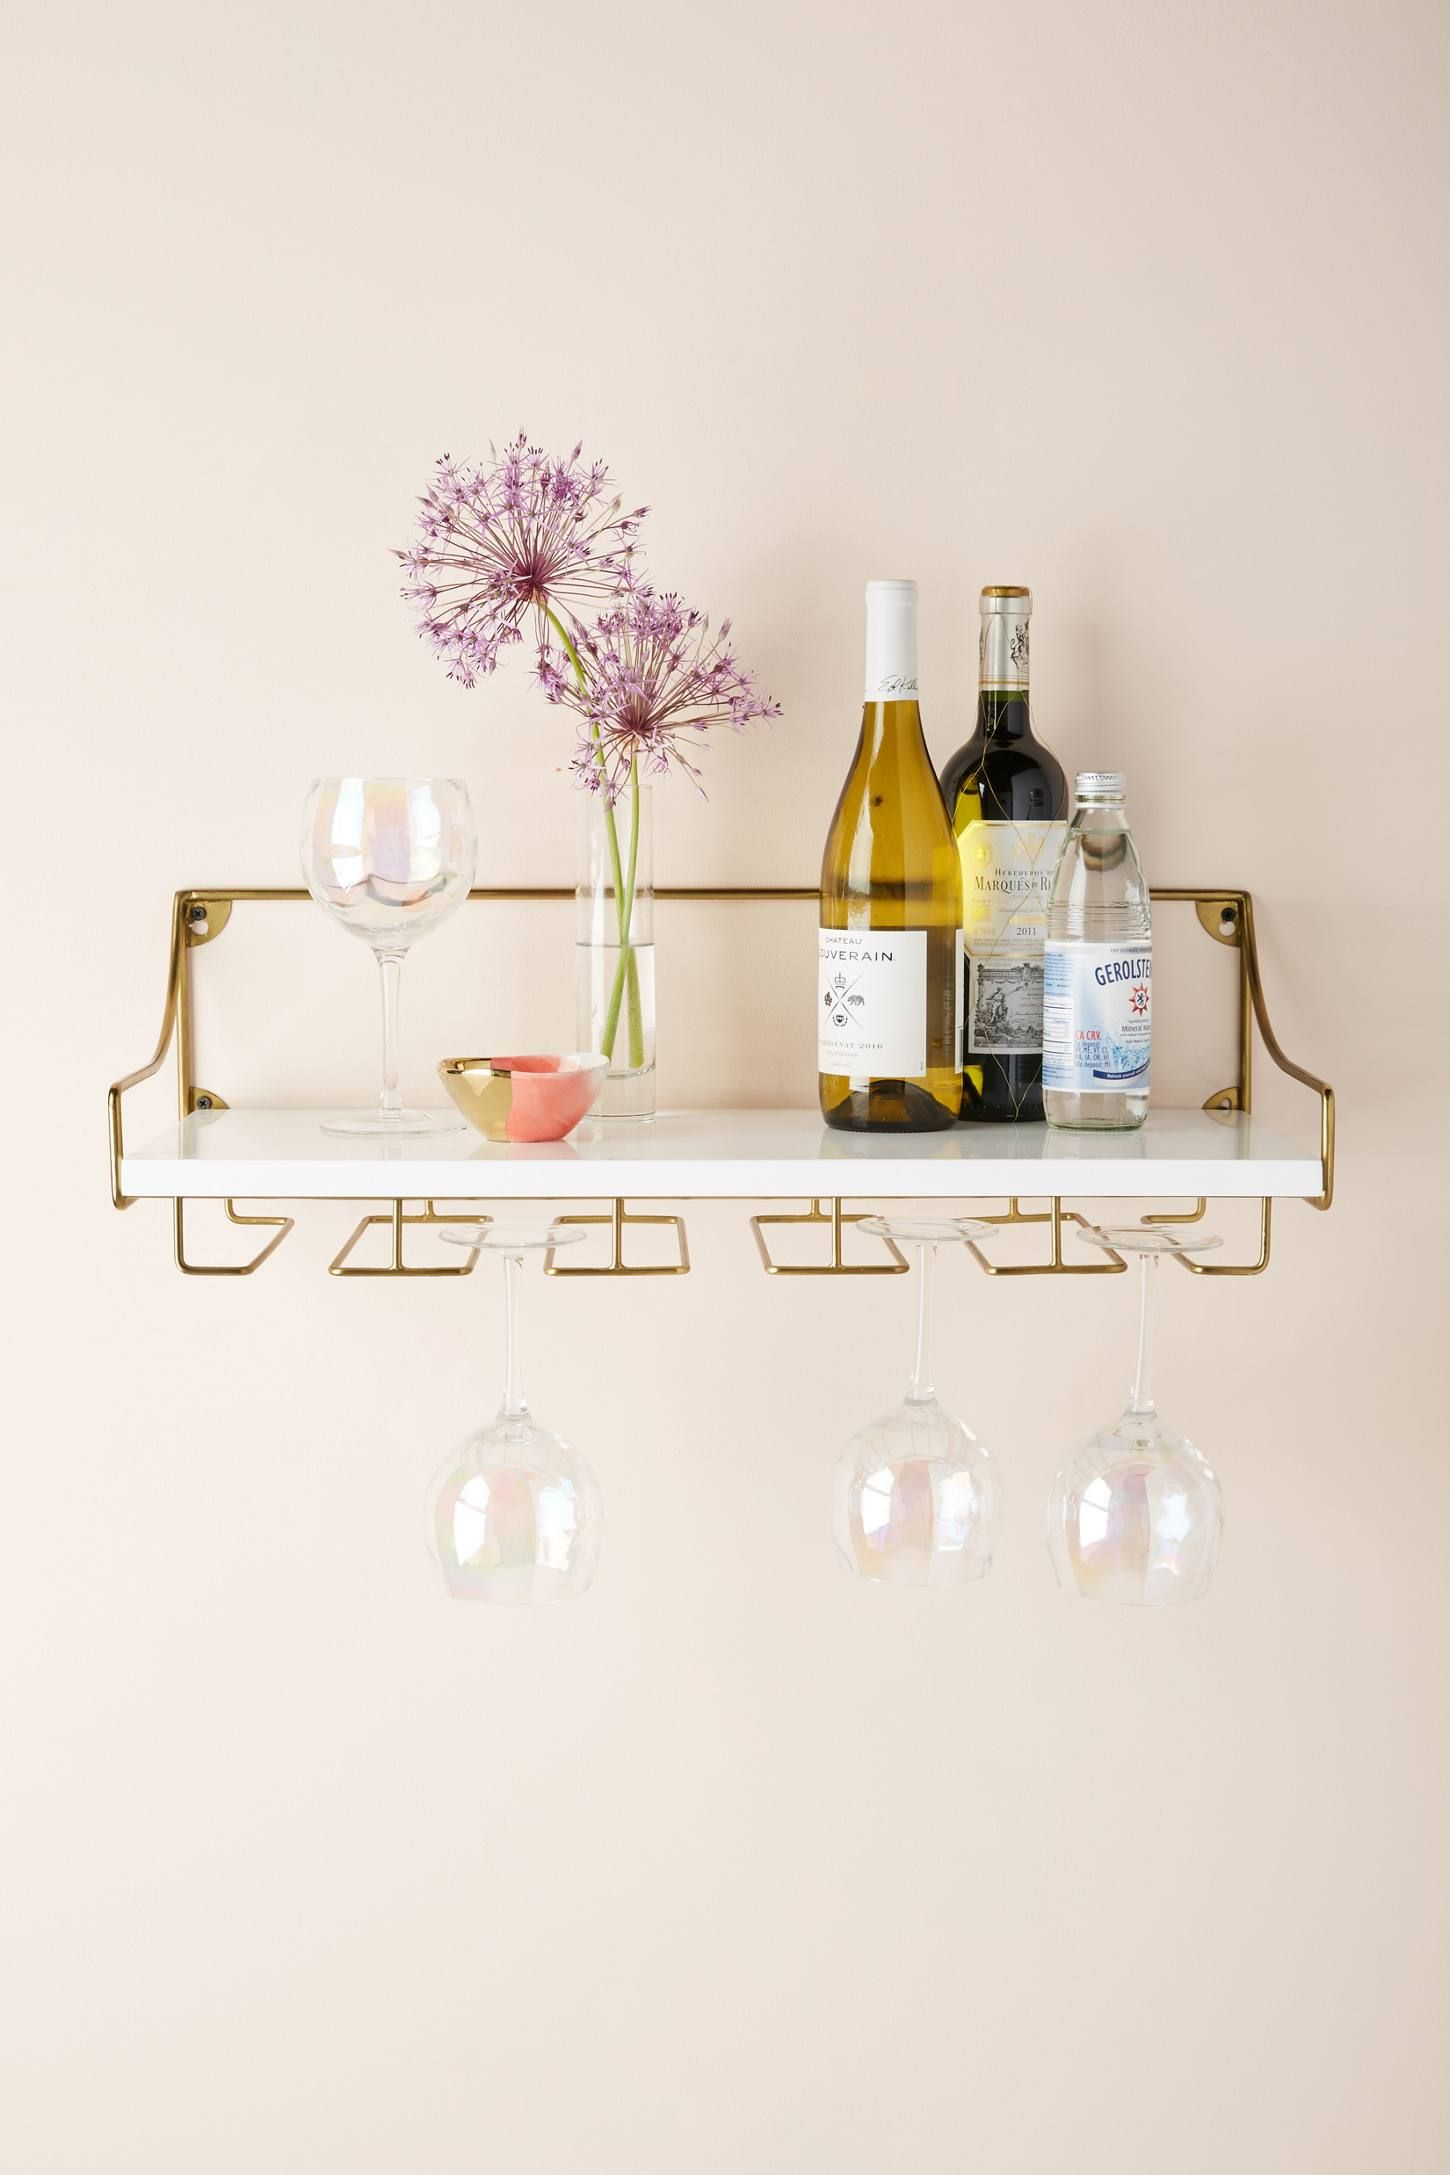 Anthropologie S Wall Mounted Wine Glass Shelf Is Essentially A Space Saving Bar Cart